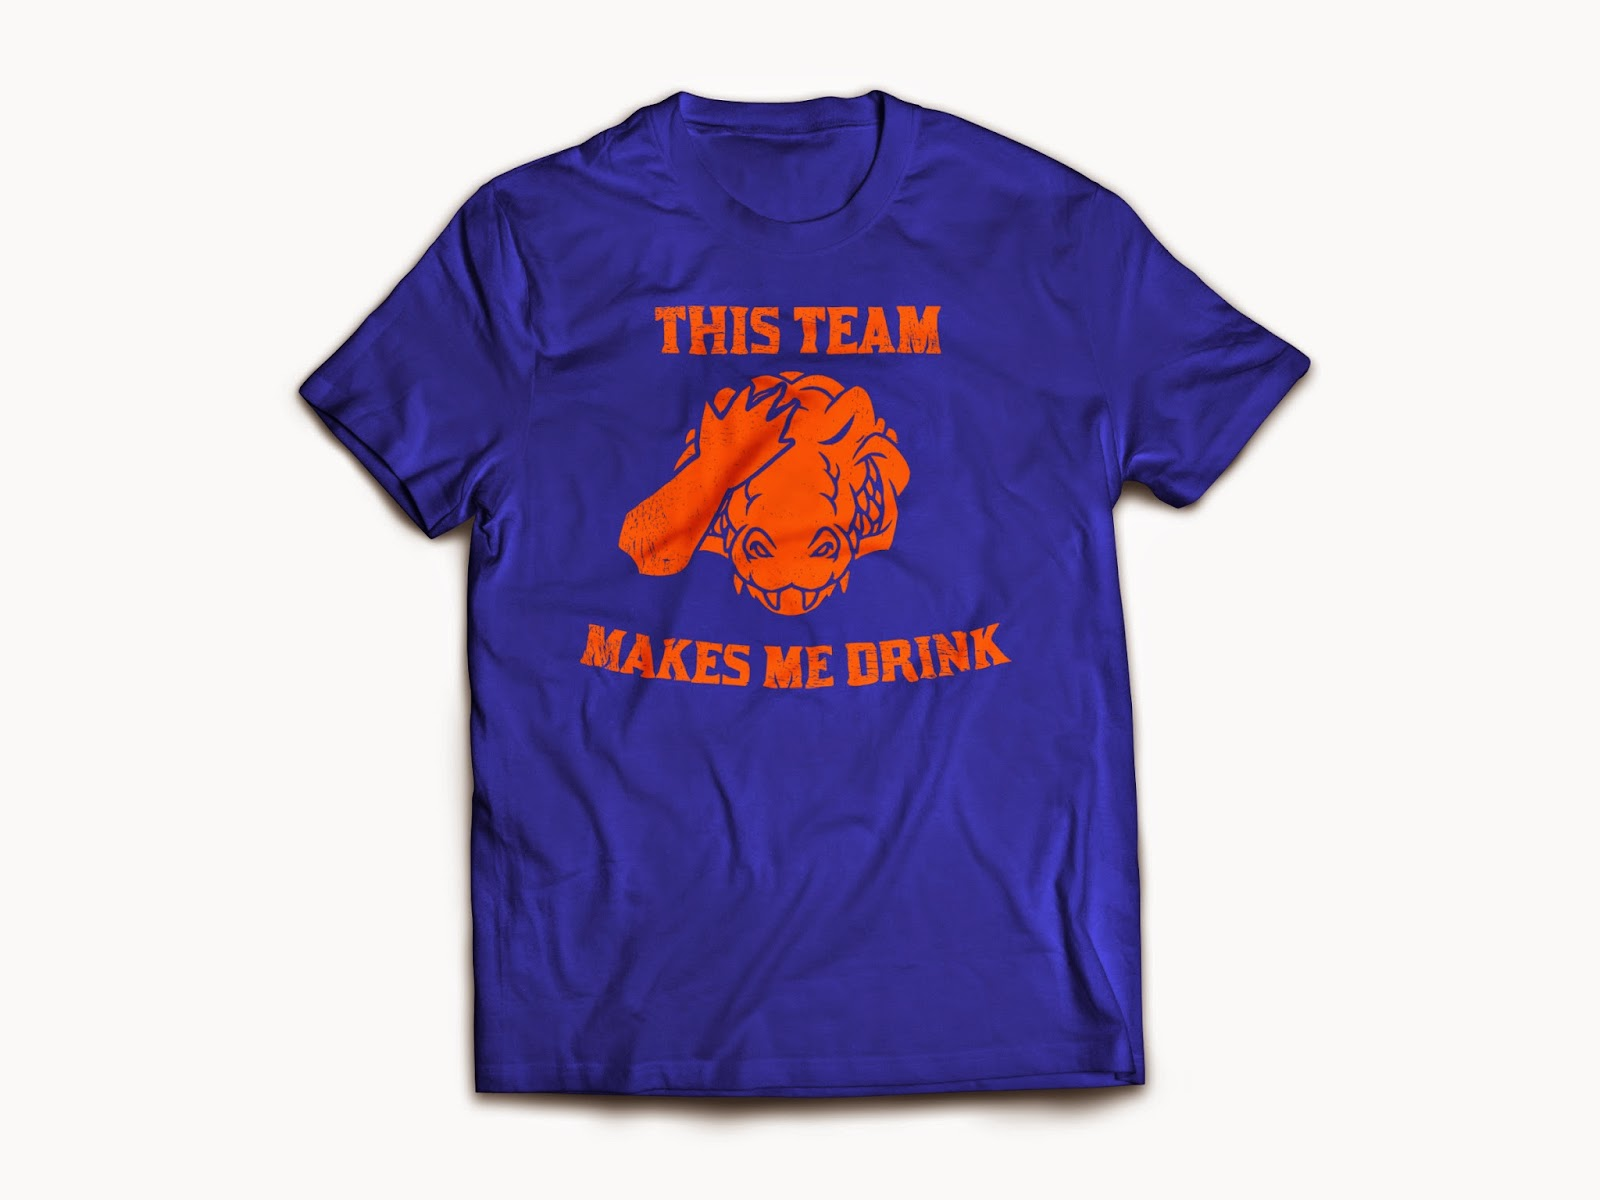 Florida fan gift guide: A drinking shirt with a football problem.